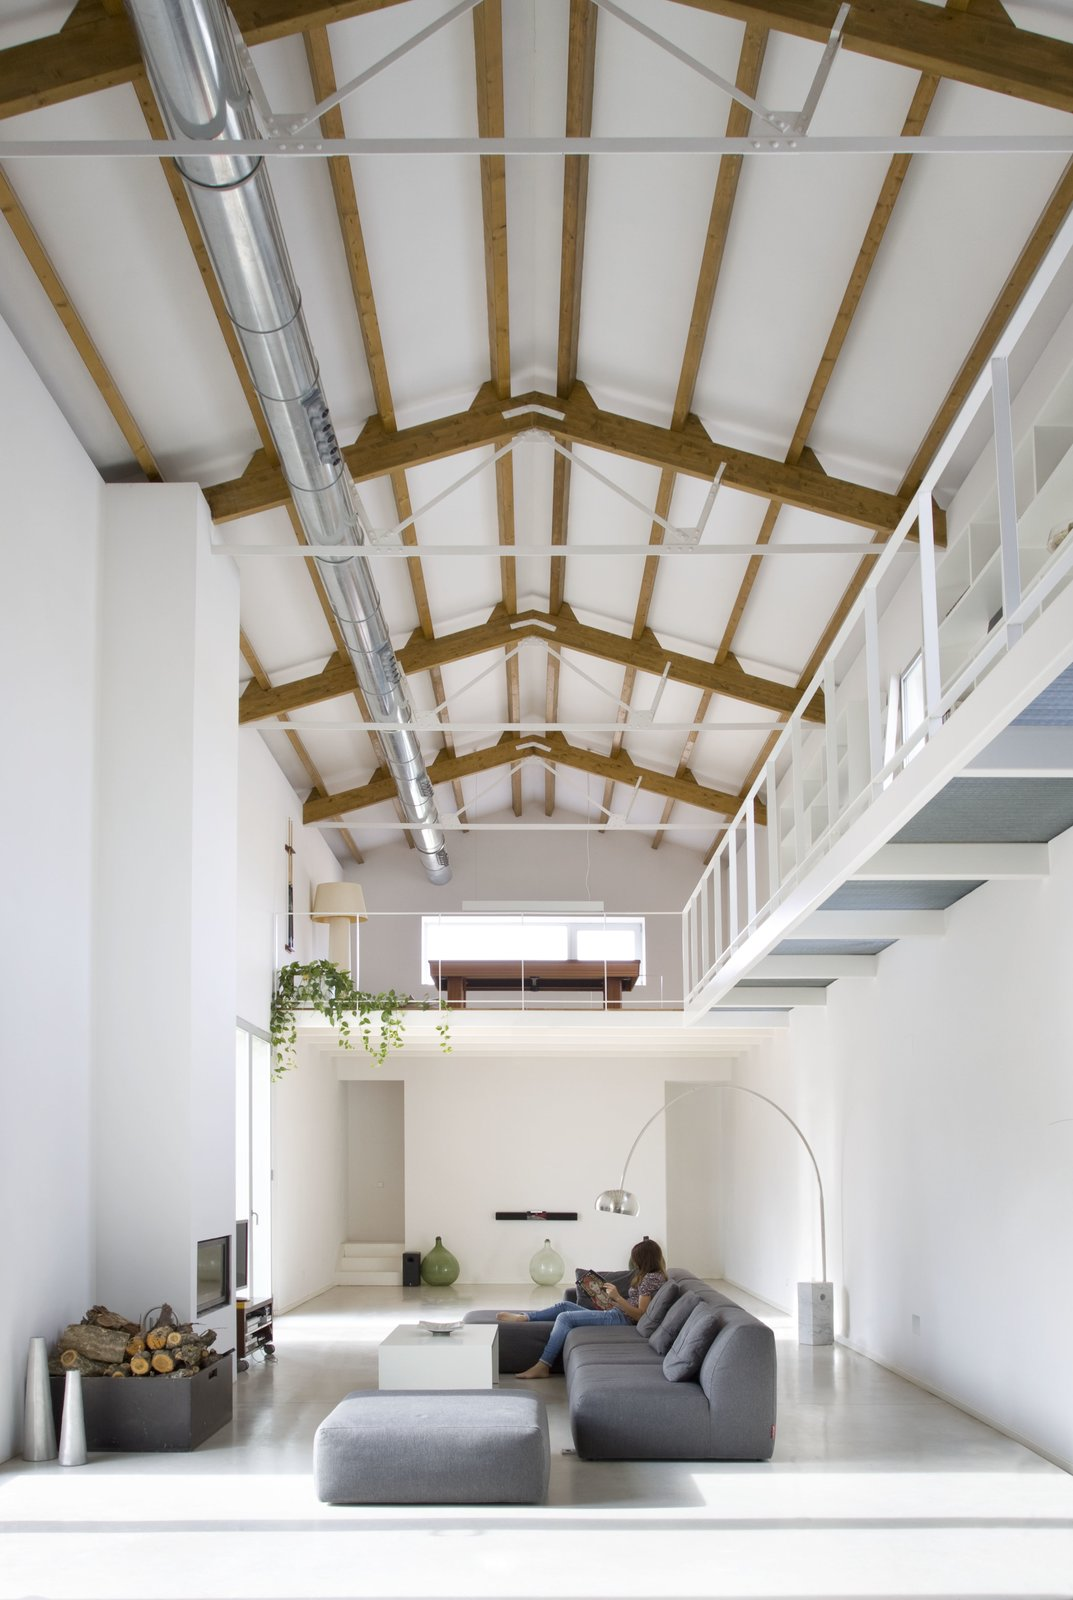 Living Room, Floor Lighting, Sofa, Standard Layout Fireplace, Concrete Floor, and Ottomans The wooden beams on the ceiling have been left exposed to add warmth and color to the otherwise simple white color scheme.    Photo 7 of 11 in A Minimalist Mediterranean Home Rises in Rural Spain